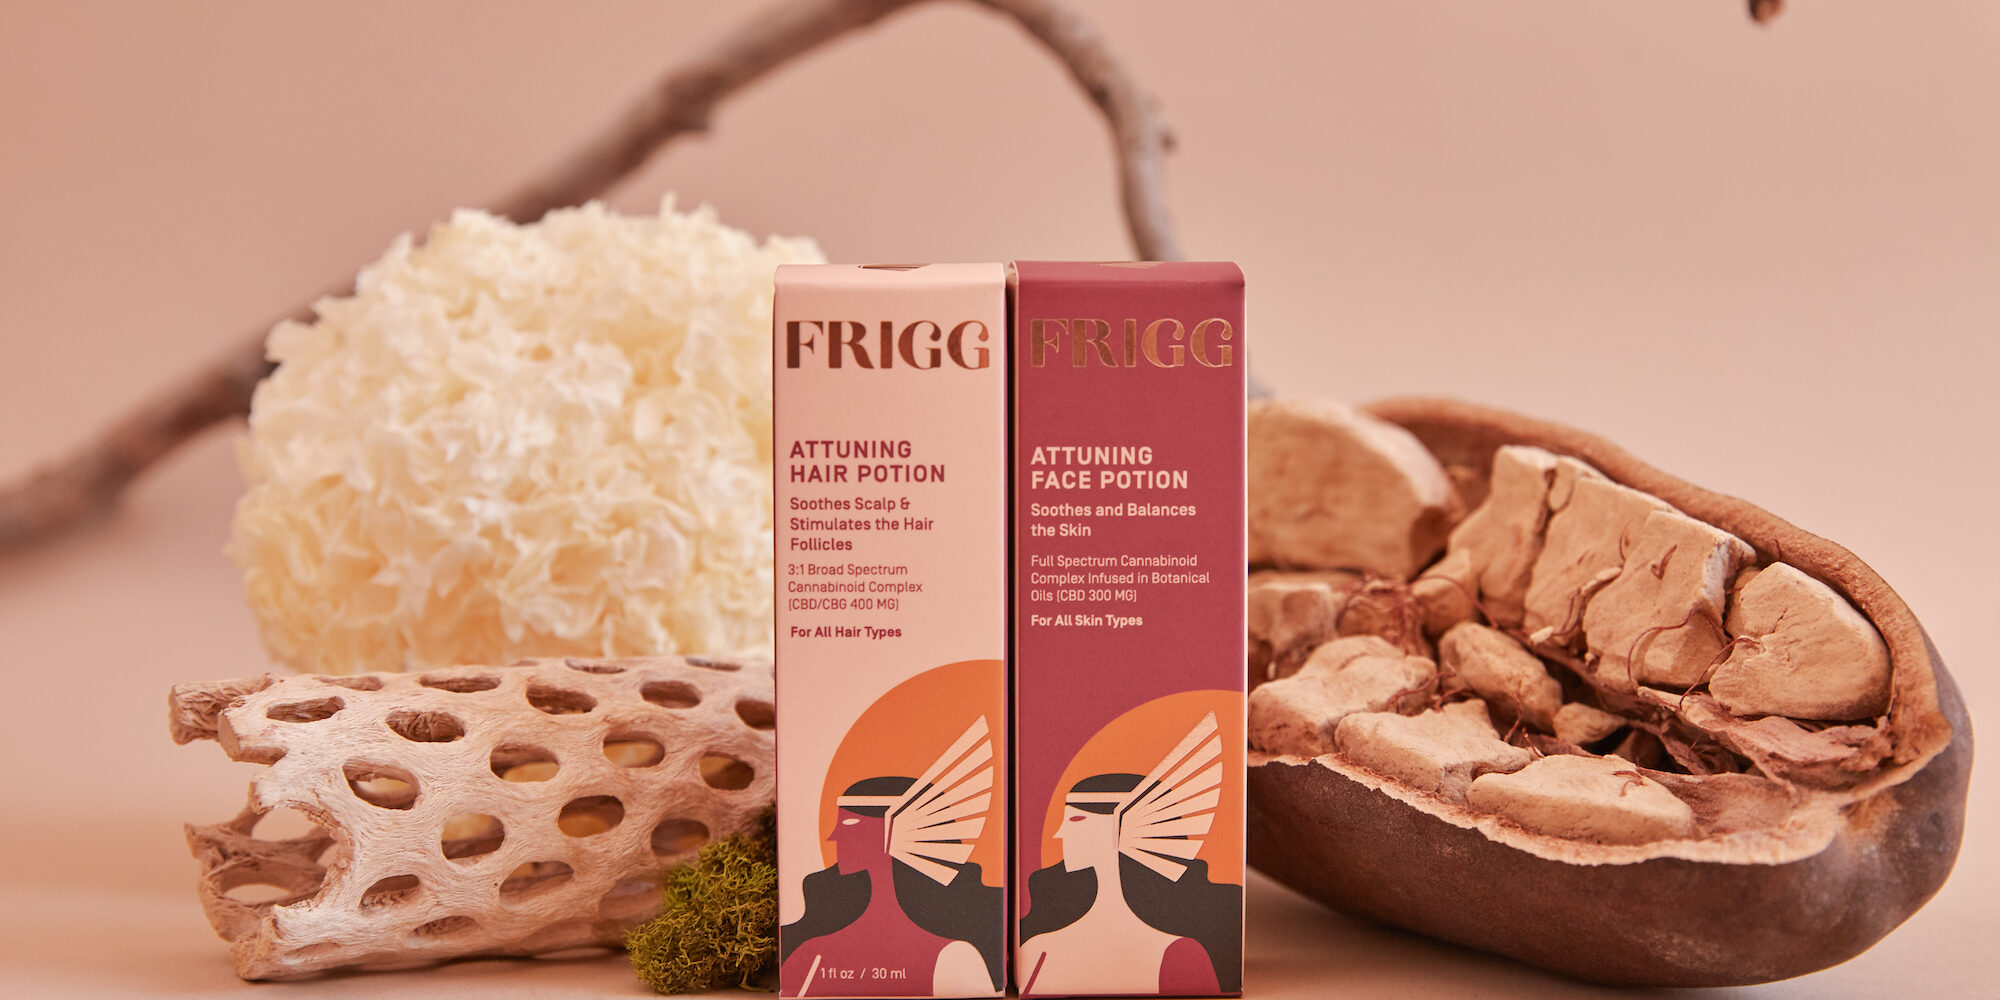 Cannabis Beauty And Wellness Specialist Frigg Expands Retail Distribution, Joins Credo For Change 2021 Cohort